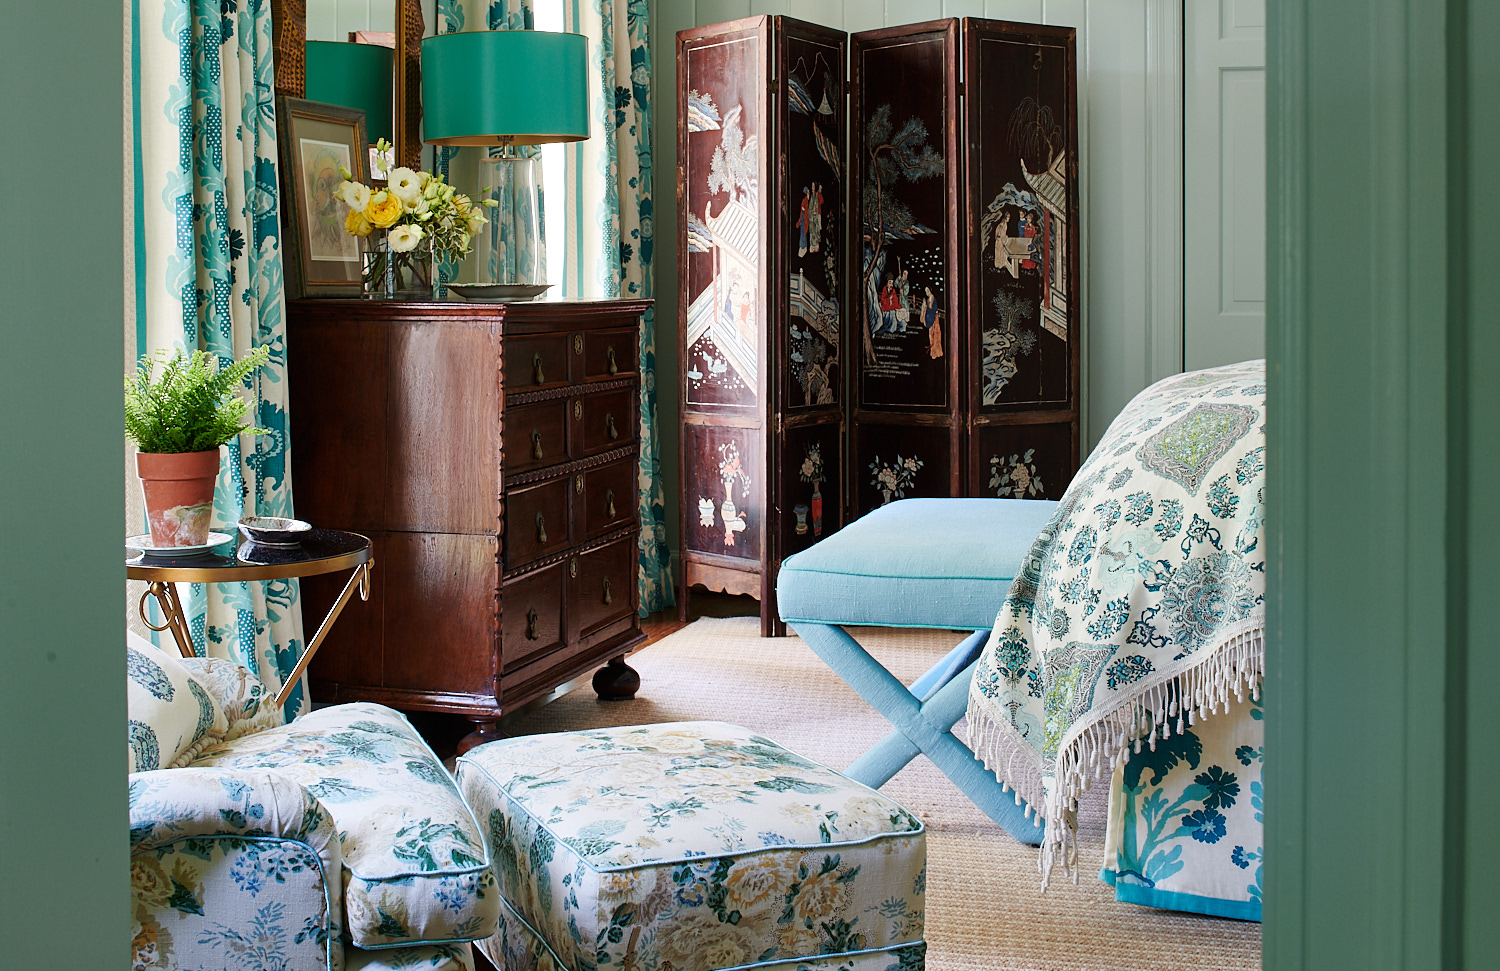 Blackout drapery, upholstered floral chair and matching ottoman, bedskirt, and upholstered bench